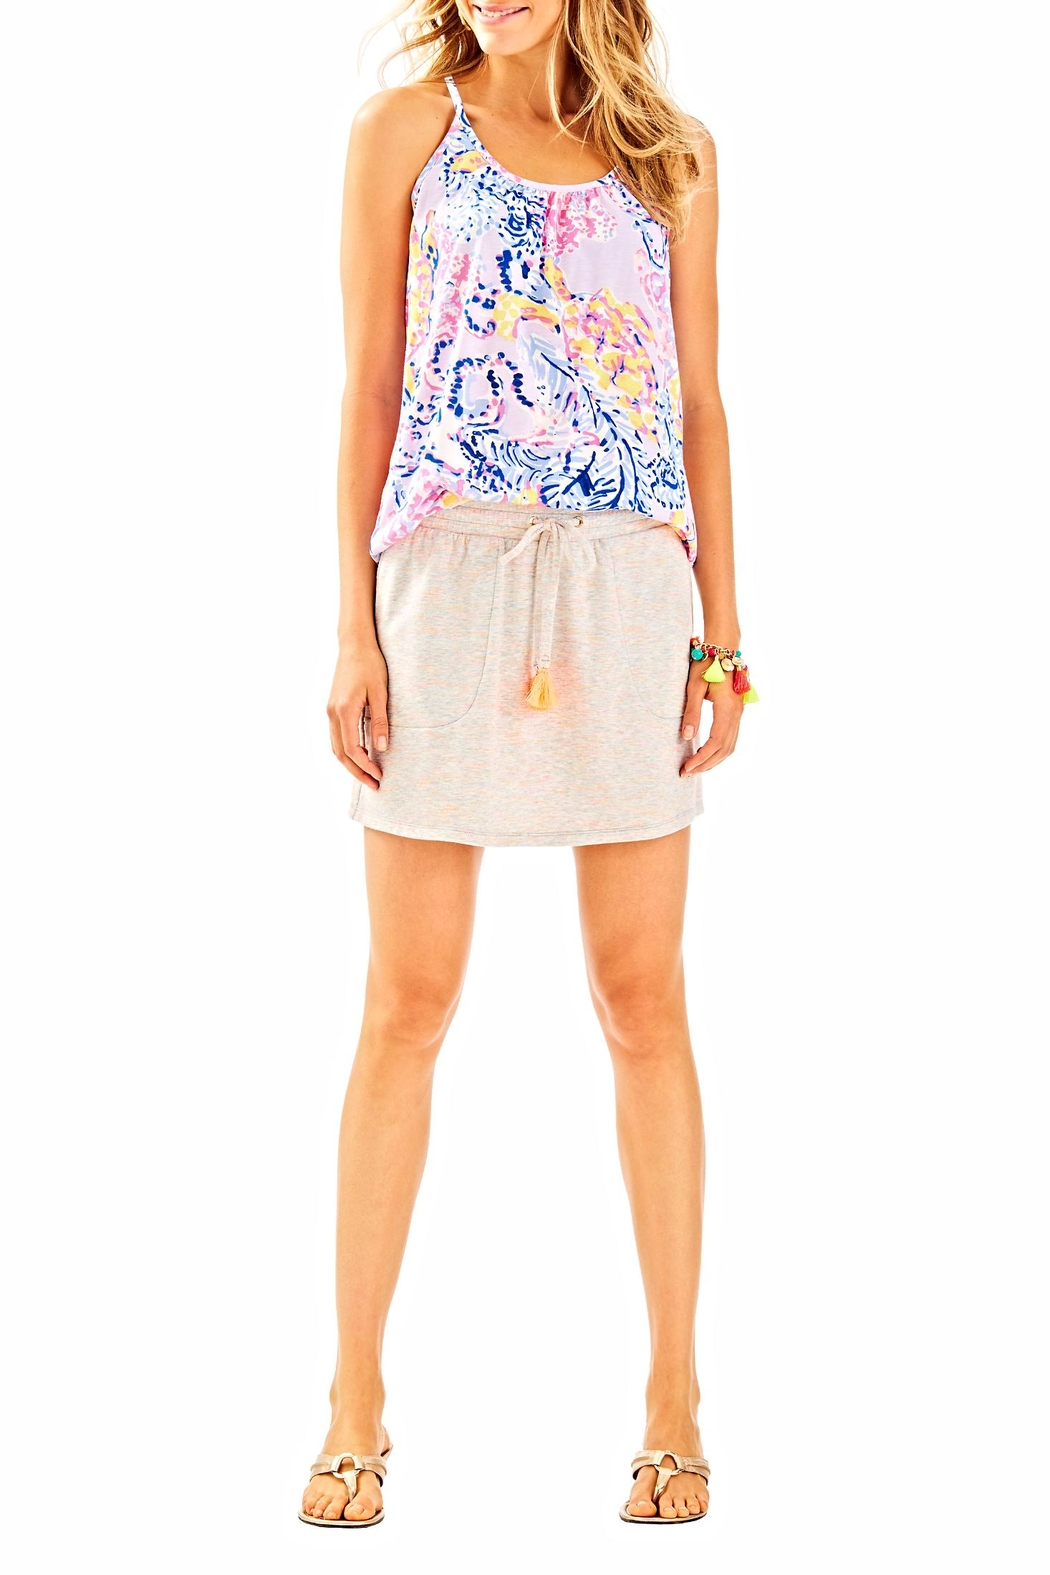 Lilly Pulitzer Zia Skirt - Main Image